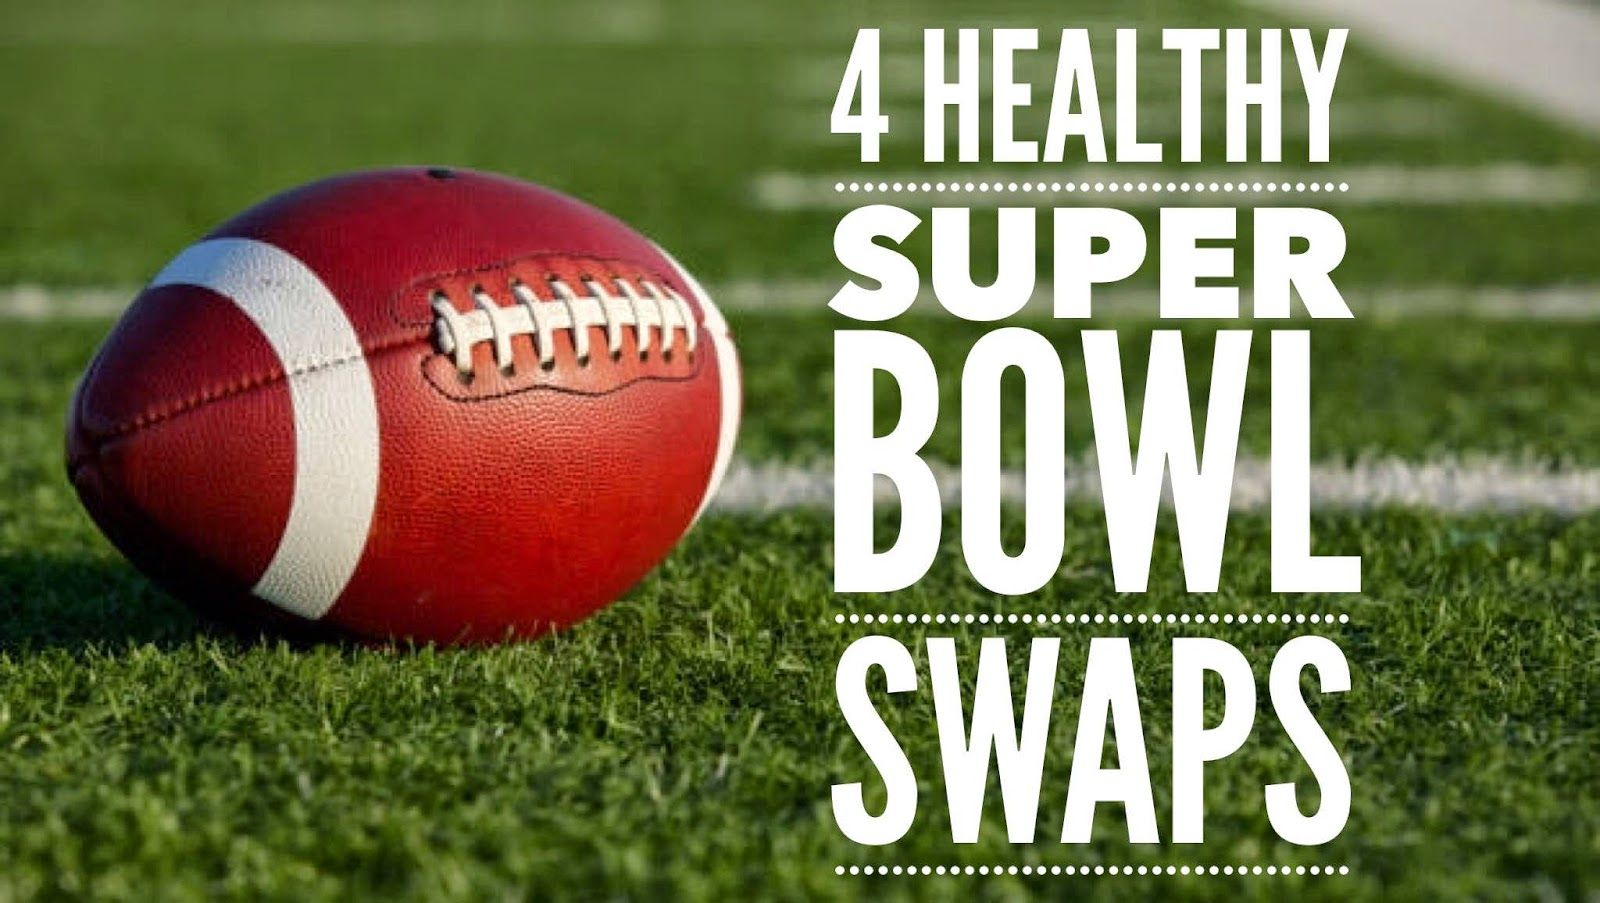 21 Day Sugar Detox Score BIG with these Superbowl Swaps